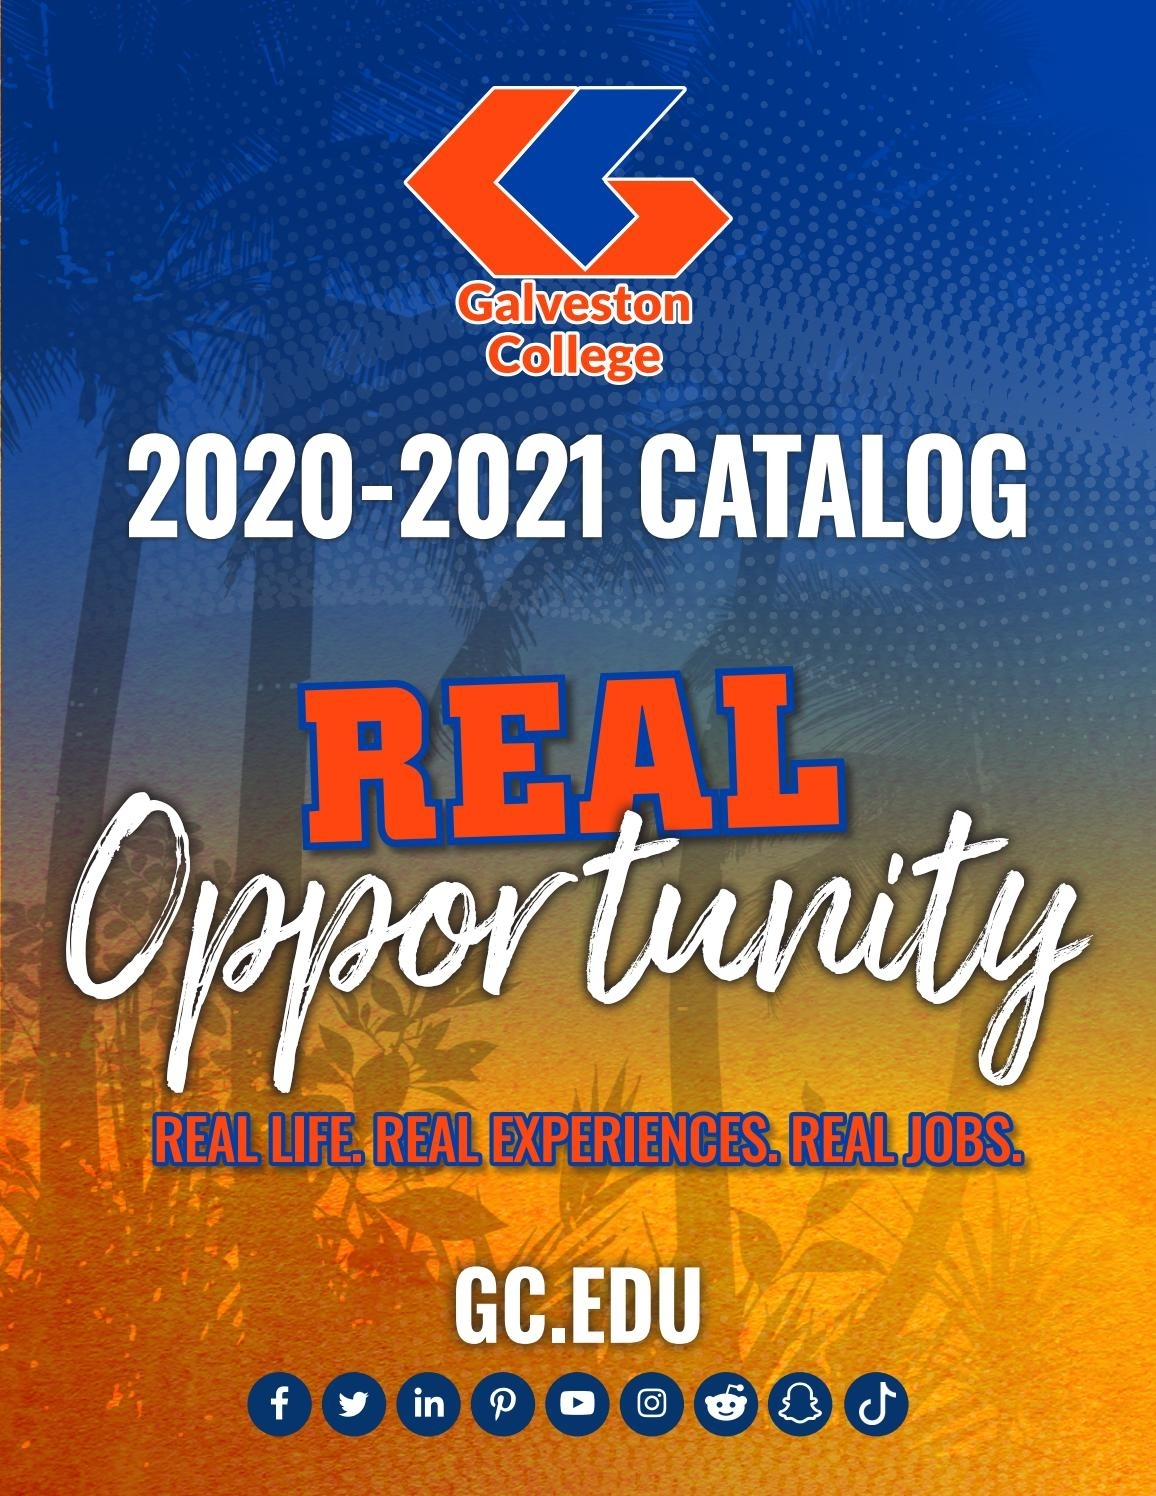 2020-2021 Galveston College Cataloggalveston College - Issuu